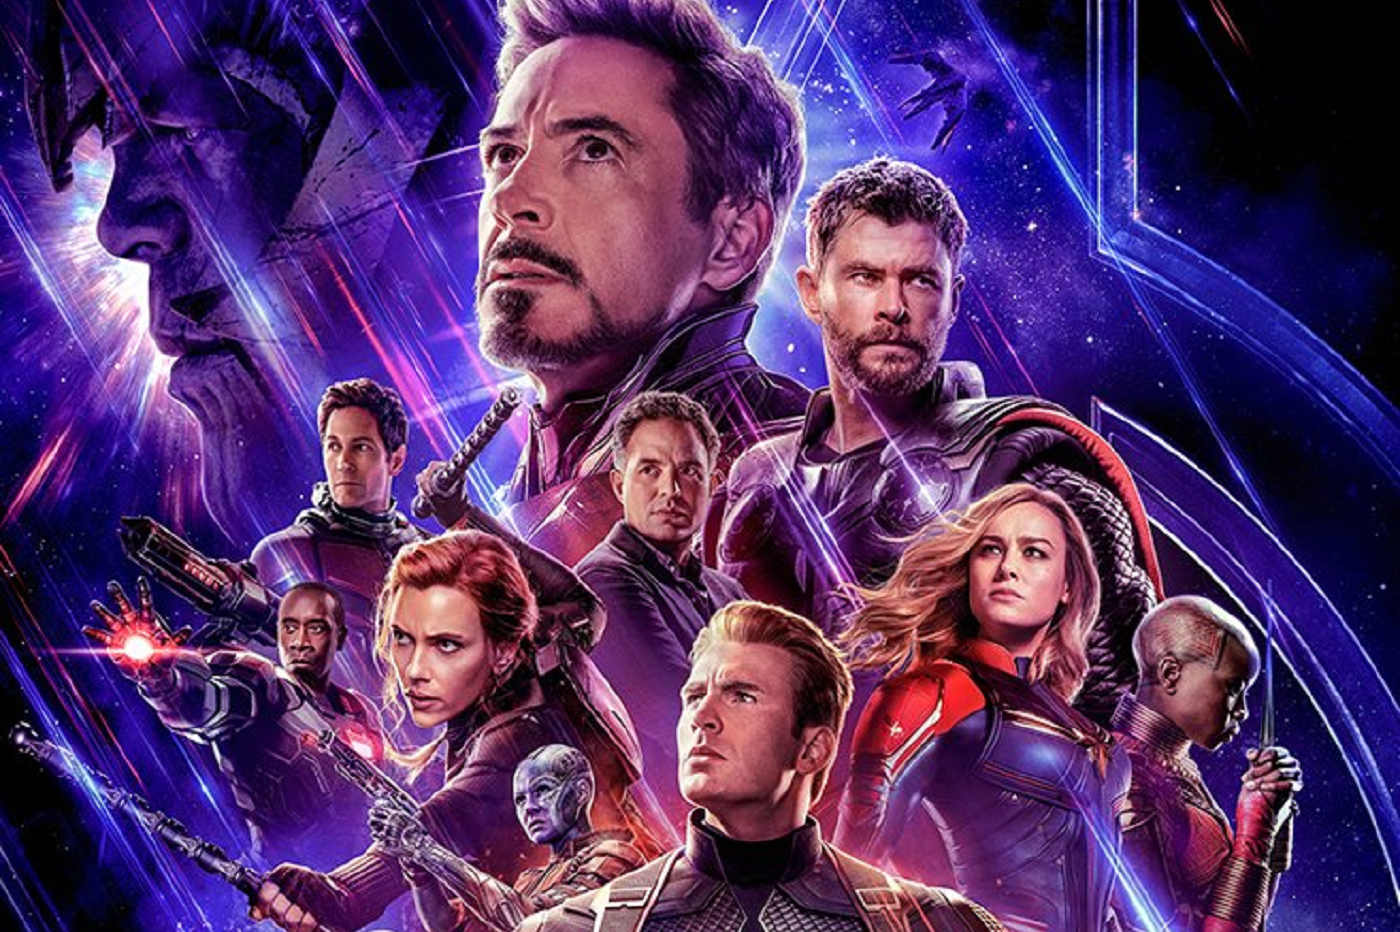 Avengers Endgame trailer 2 analyse théories spoilers bande-annonce Avengers 4